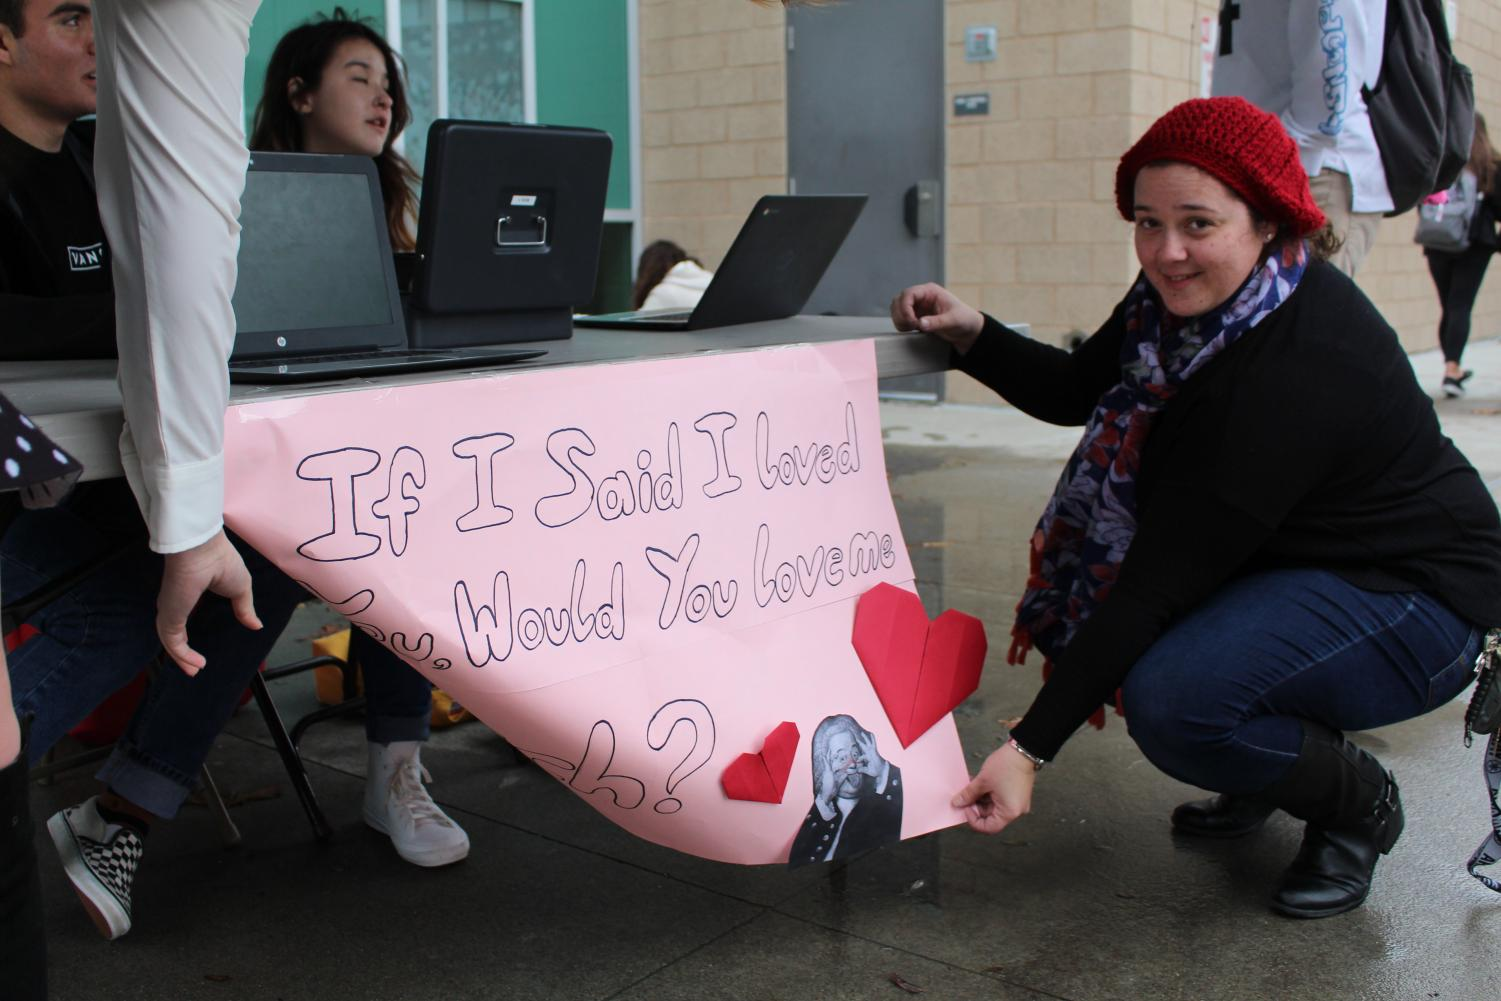 Ms.+Quinones%2C+the+choir+director%2C+holds+up+the+Valentines+grams+sign+on+a+windy+Monday+morning.+Choir+is+selling+Valentines+grams+until+Feb.+13+to+raise+money+for+the+choir+program+and+spread+a+little+love+around+the+campus.+